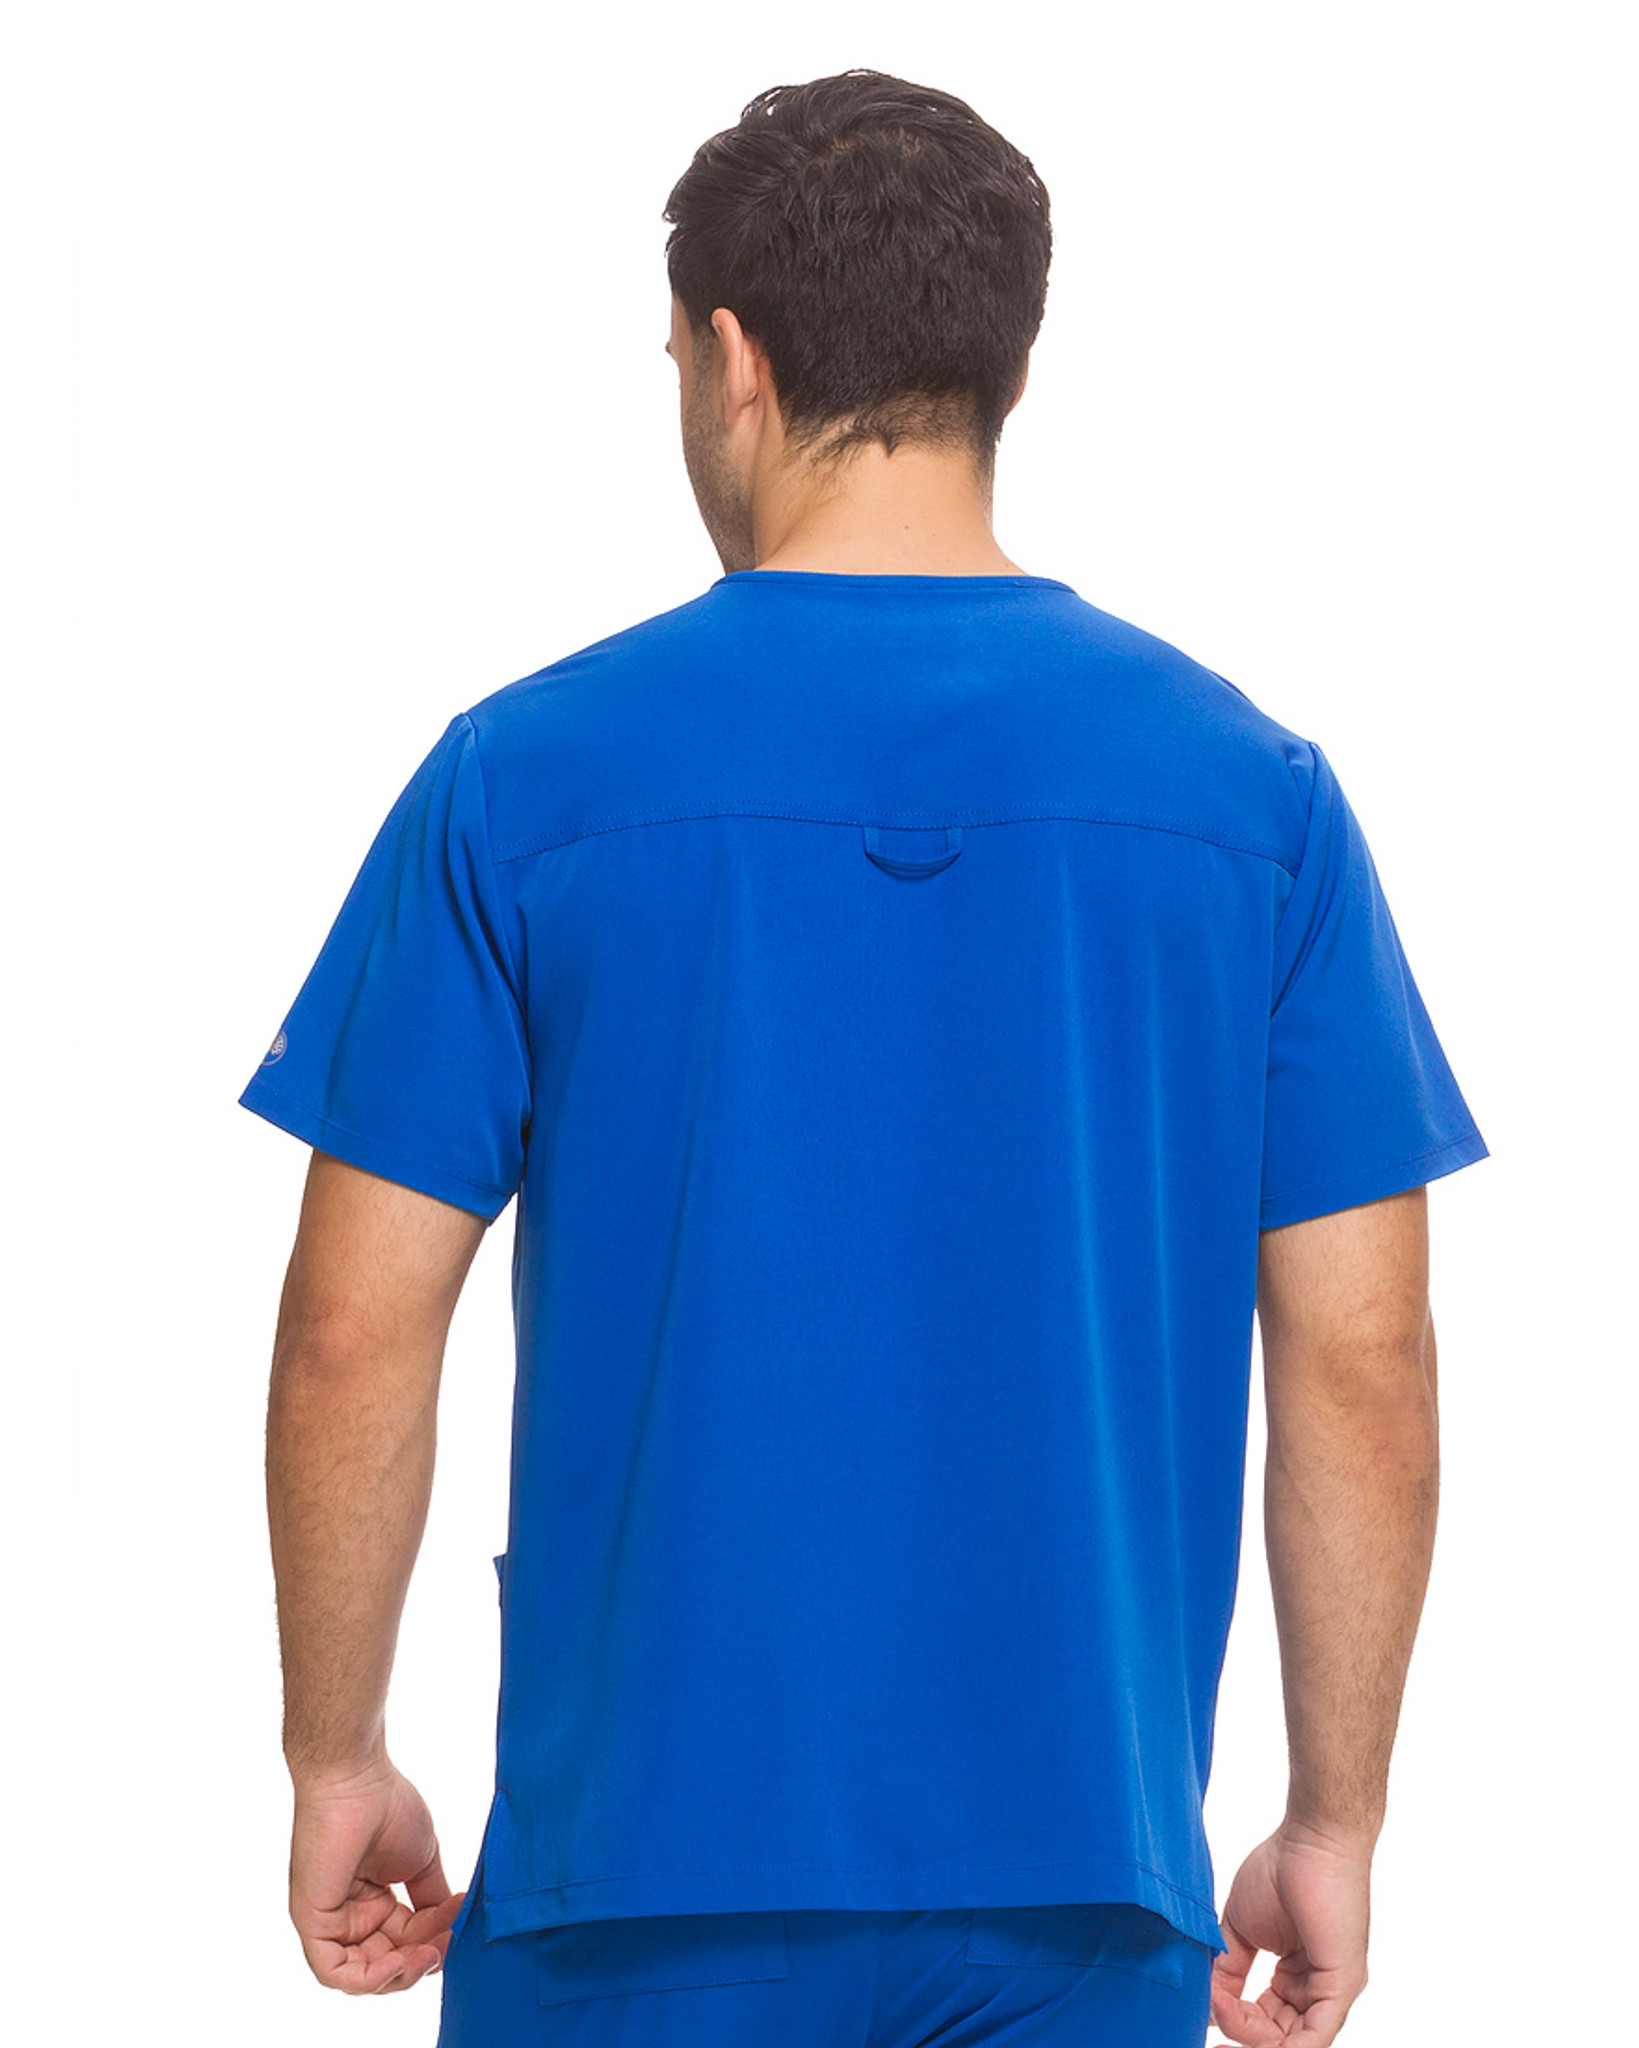 Healing Hands HH Works 2590 Matthew Men's Scrub Top with three pockets, locker loop, and side seam vent. Model image BACK.